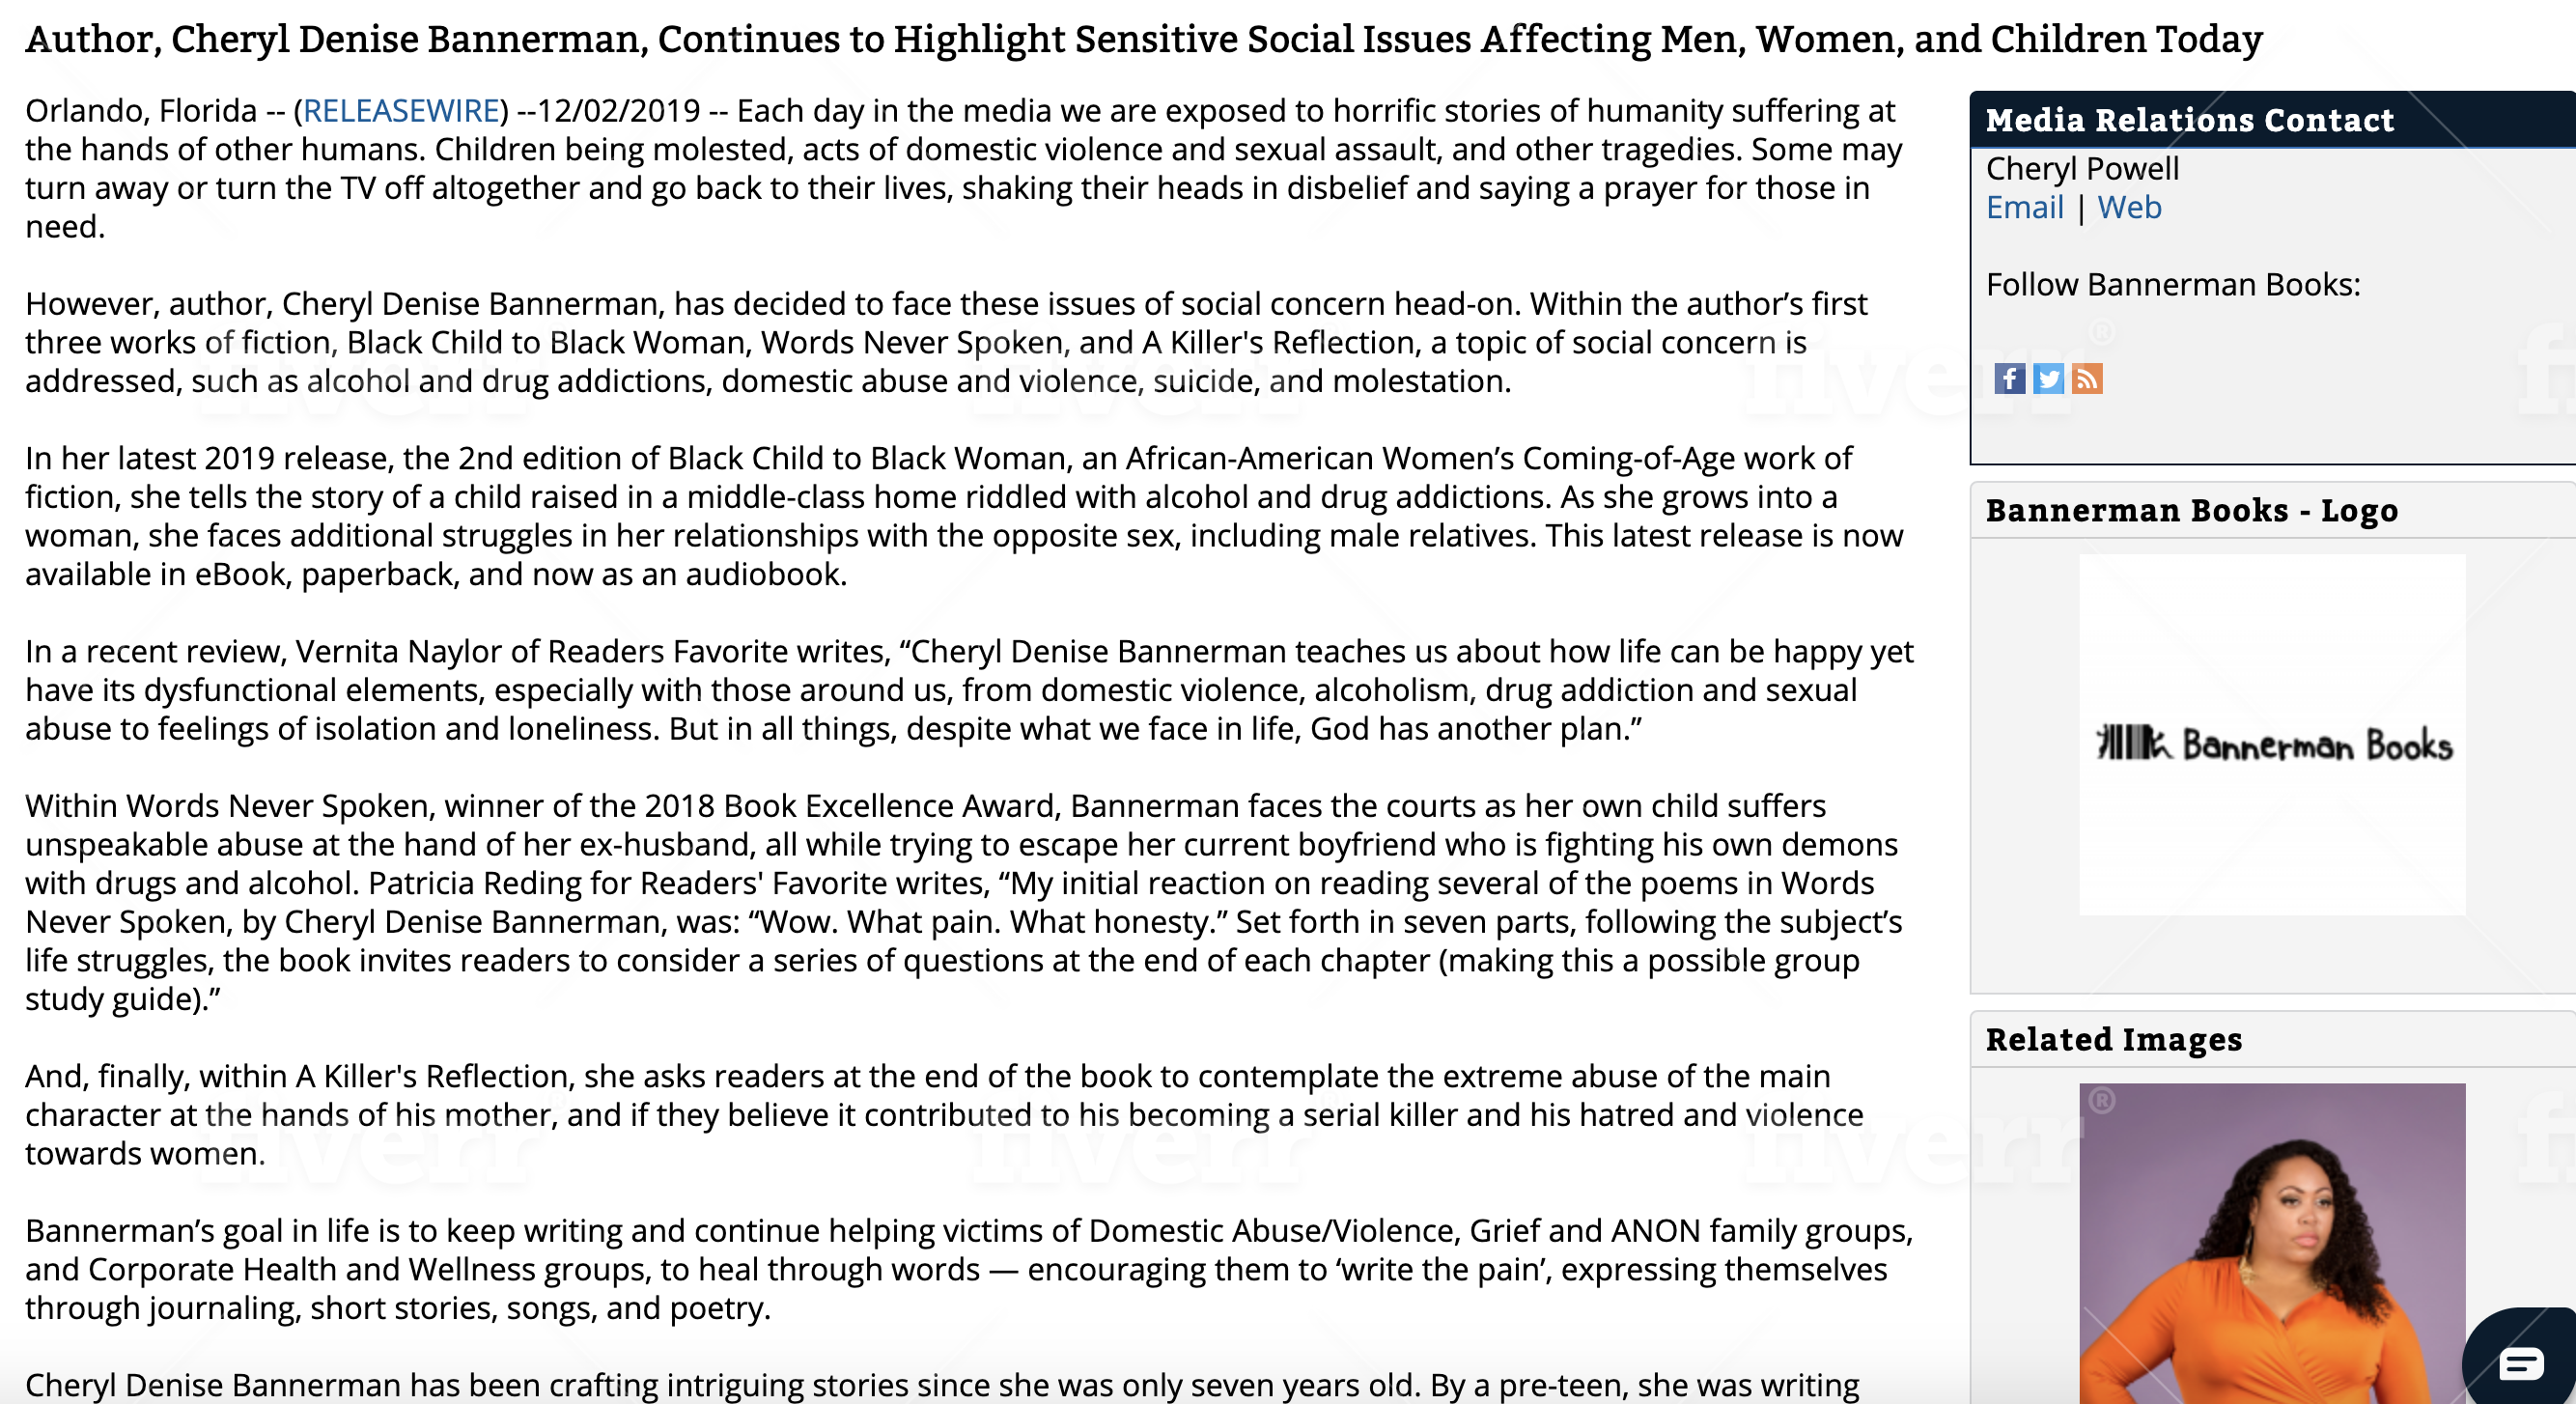 Open for Press Release: Author, Cheryl Denise Bannerman, Continues to Highlight Sensitive Social Issues Affecting Men, Women, and Children Today